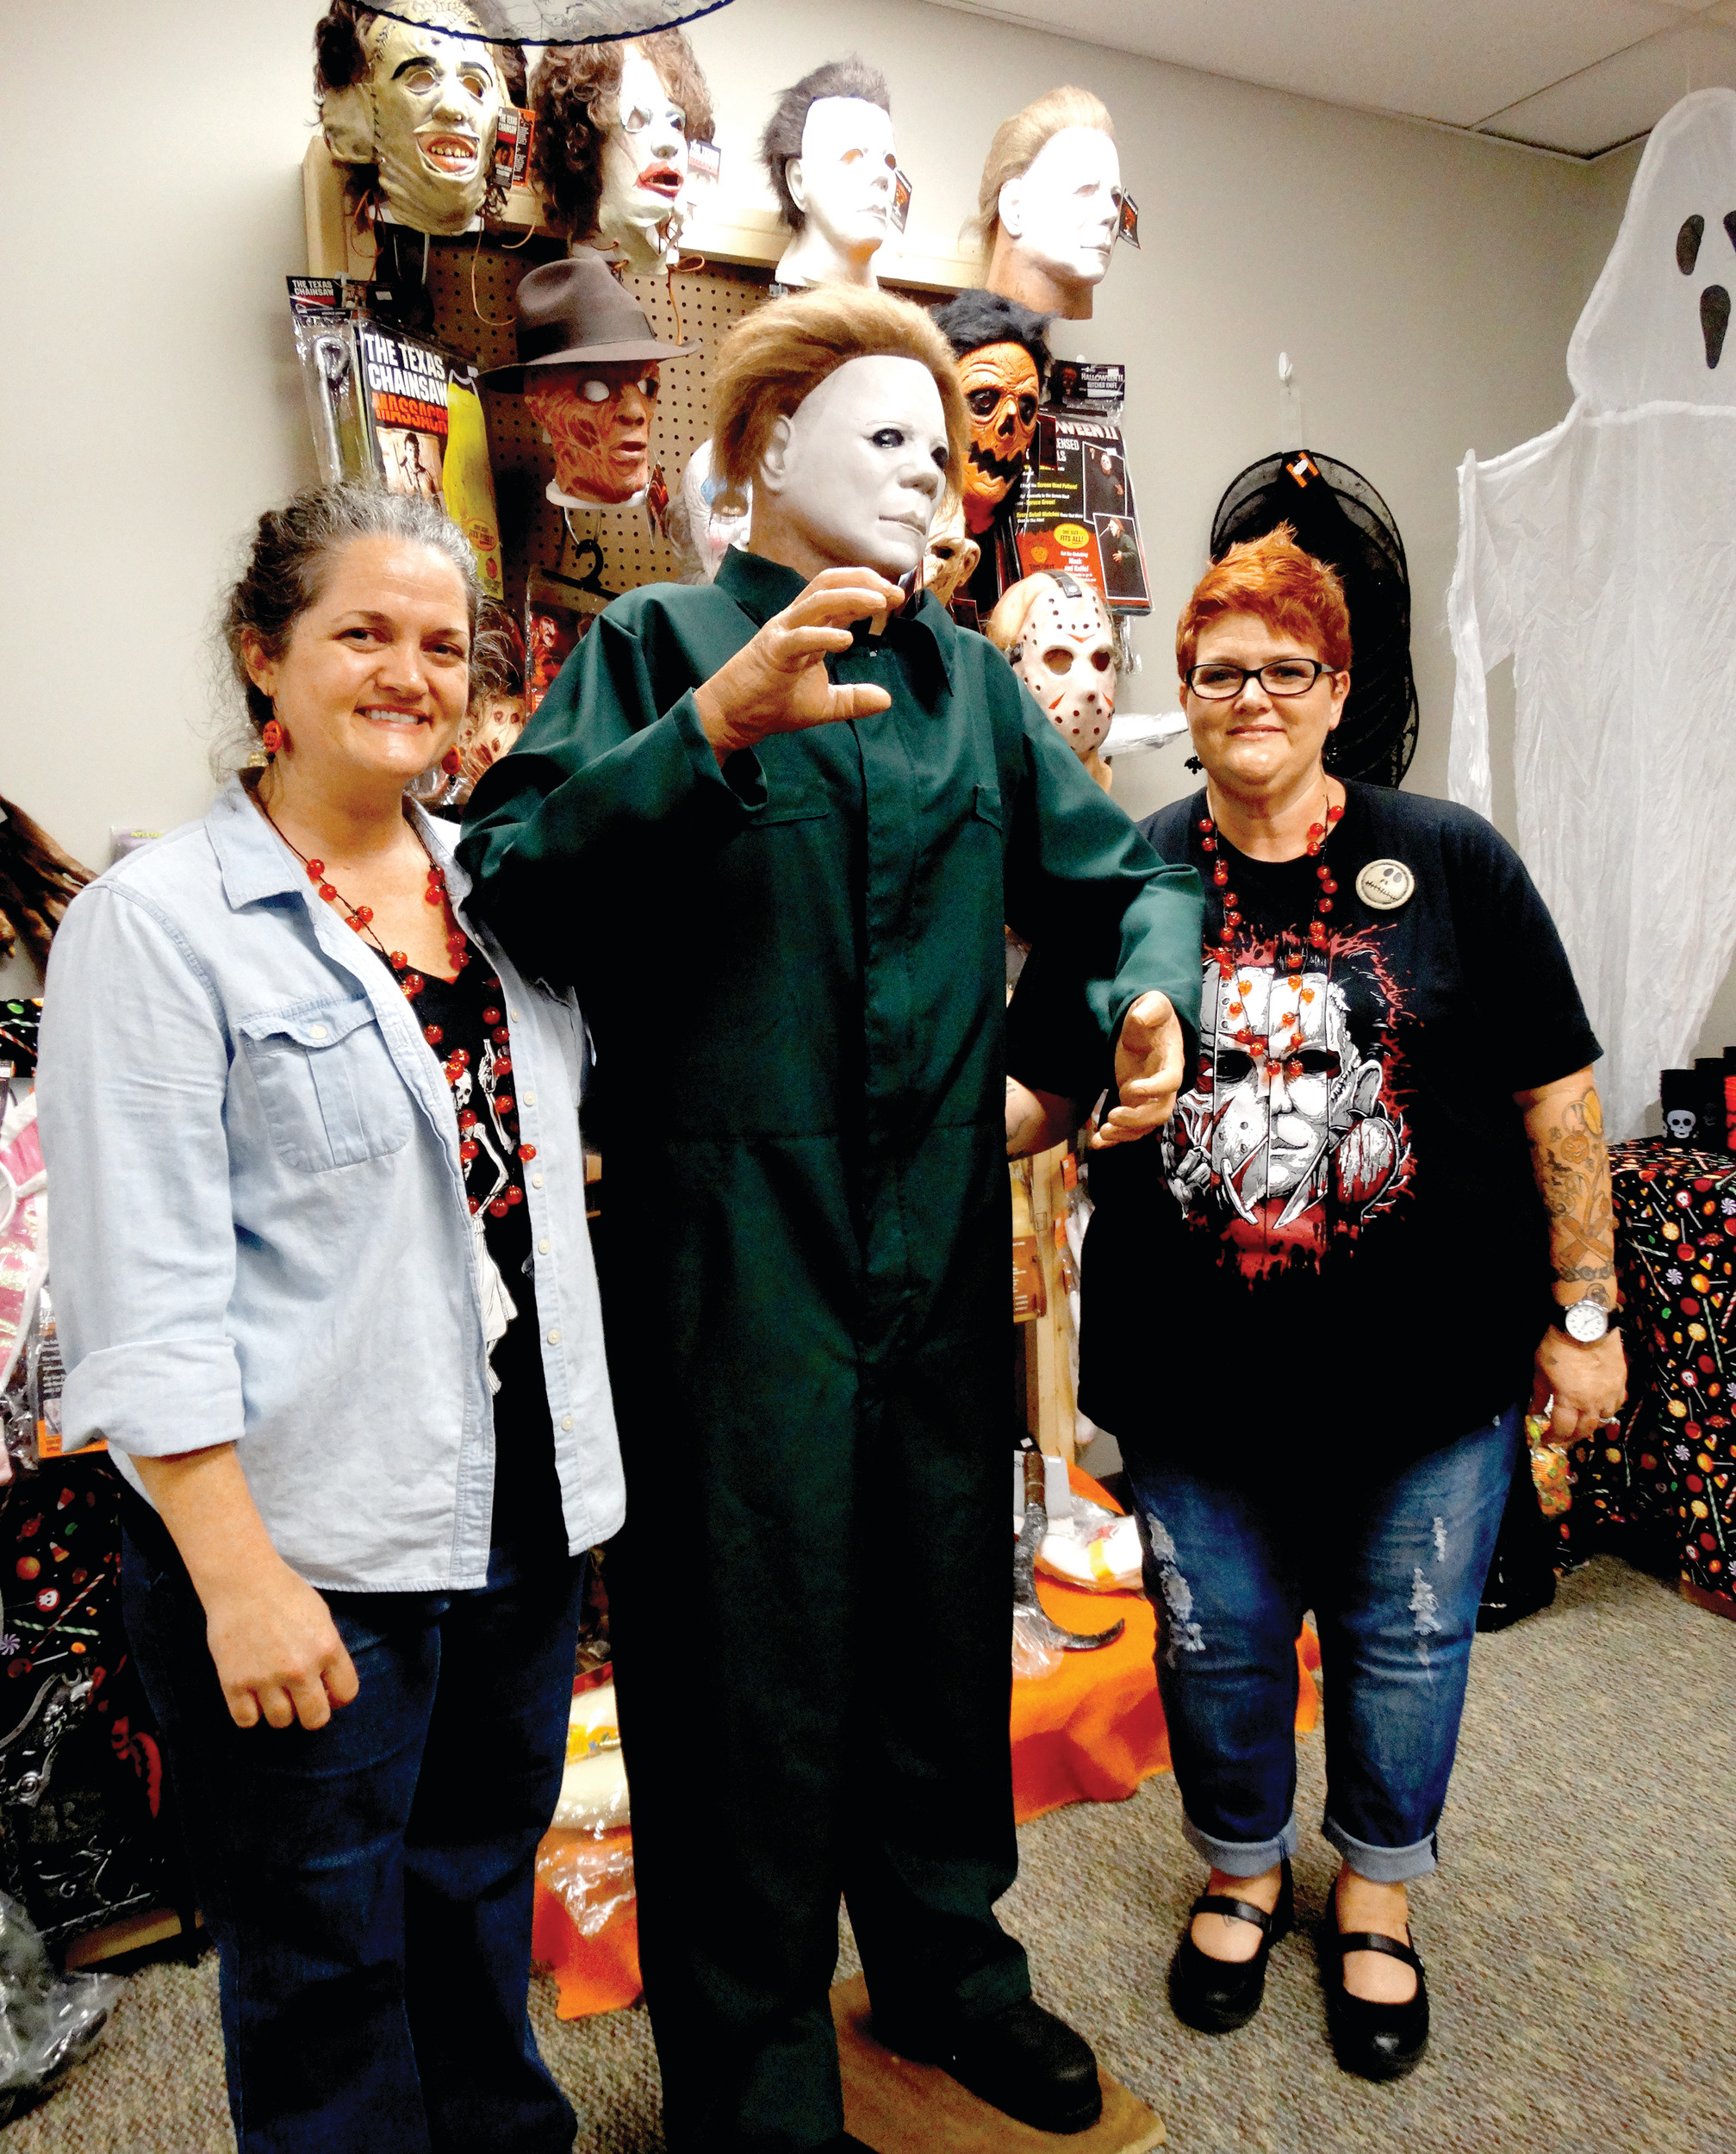 Melanie Lee, left, Michael Myers, center, and Miranda Johns are seen on the day of the grand opening of M and M's Lil Shop O' Horrors on Tuesday. The shop, located on West Liberty Street, sells a variety of Halloween costumes and decorations as well as fall and Thanksgiving items.